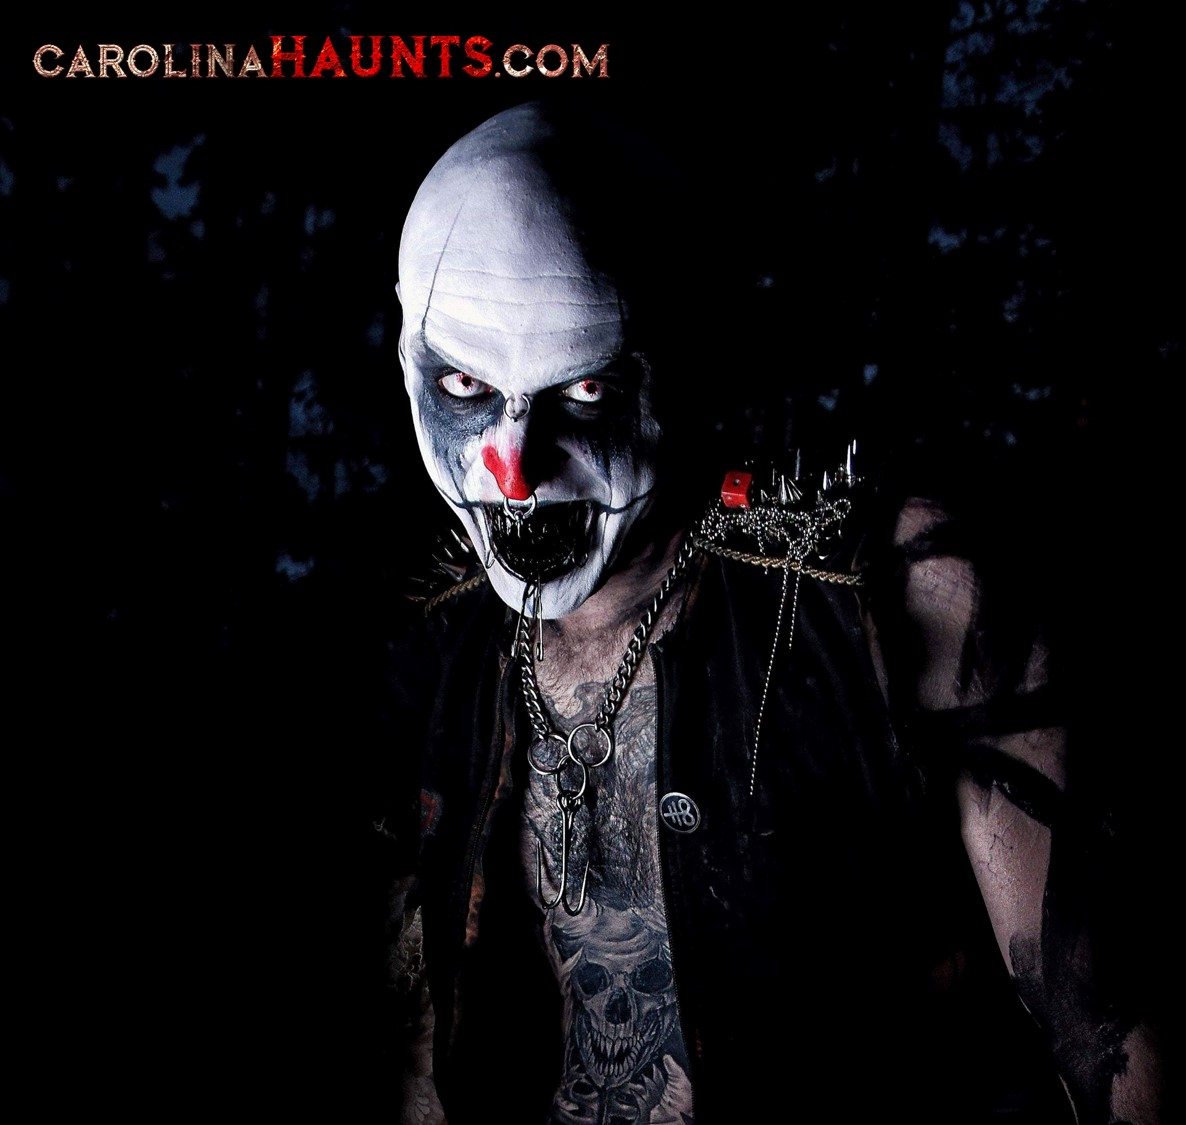 CarolinaHaunts.com Announces Spokesperson Samhain The One